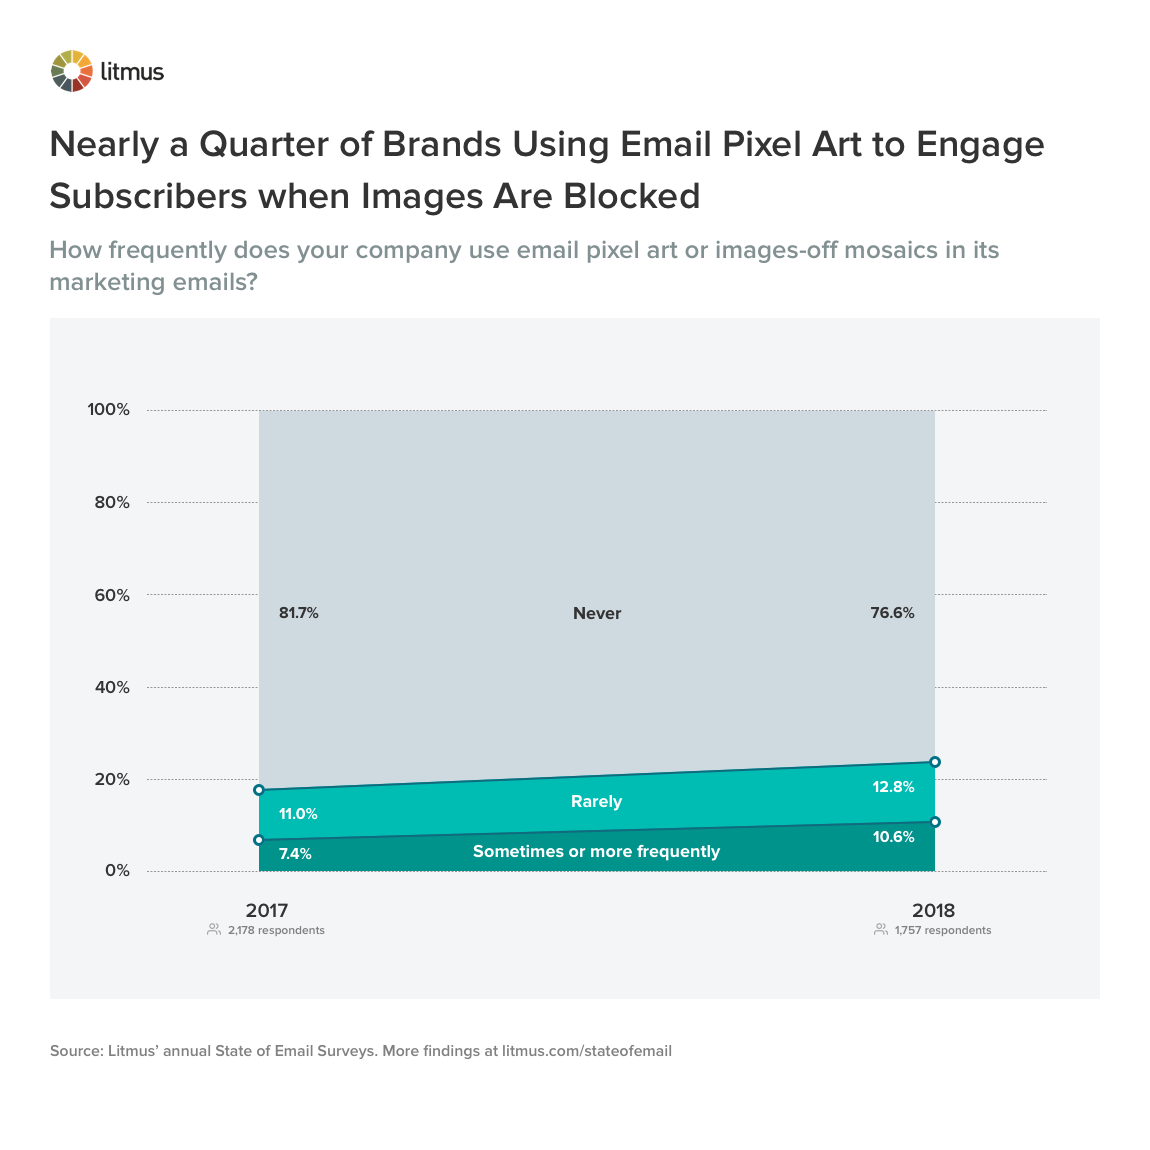 Nearly a Quarter of Brands Using Email Pixel Art to Engage Subscribers when Images Are Blocked